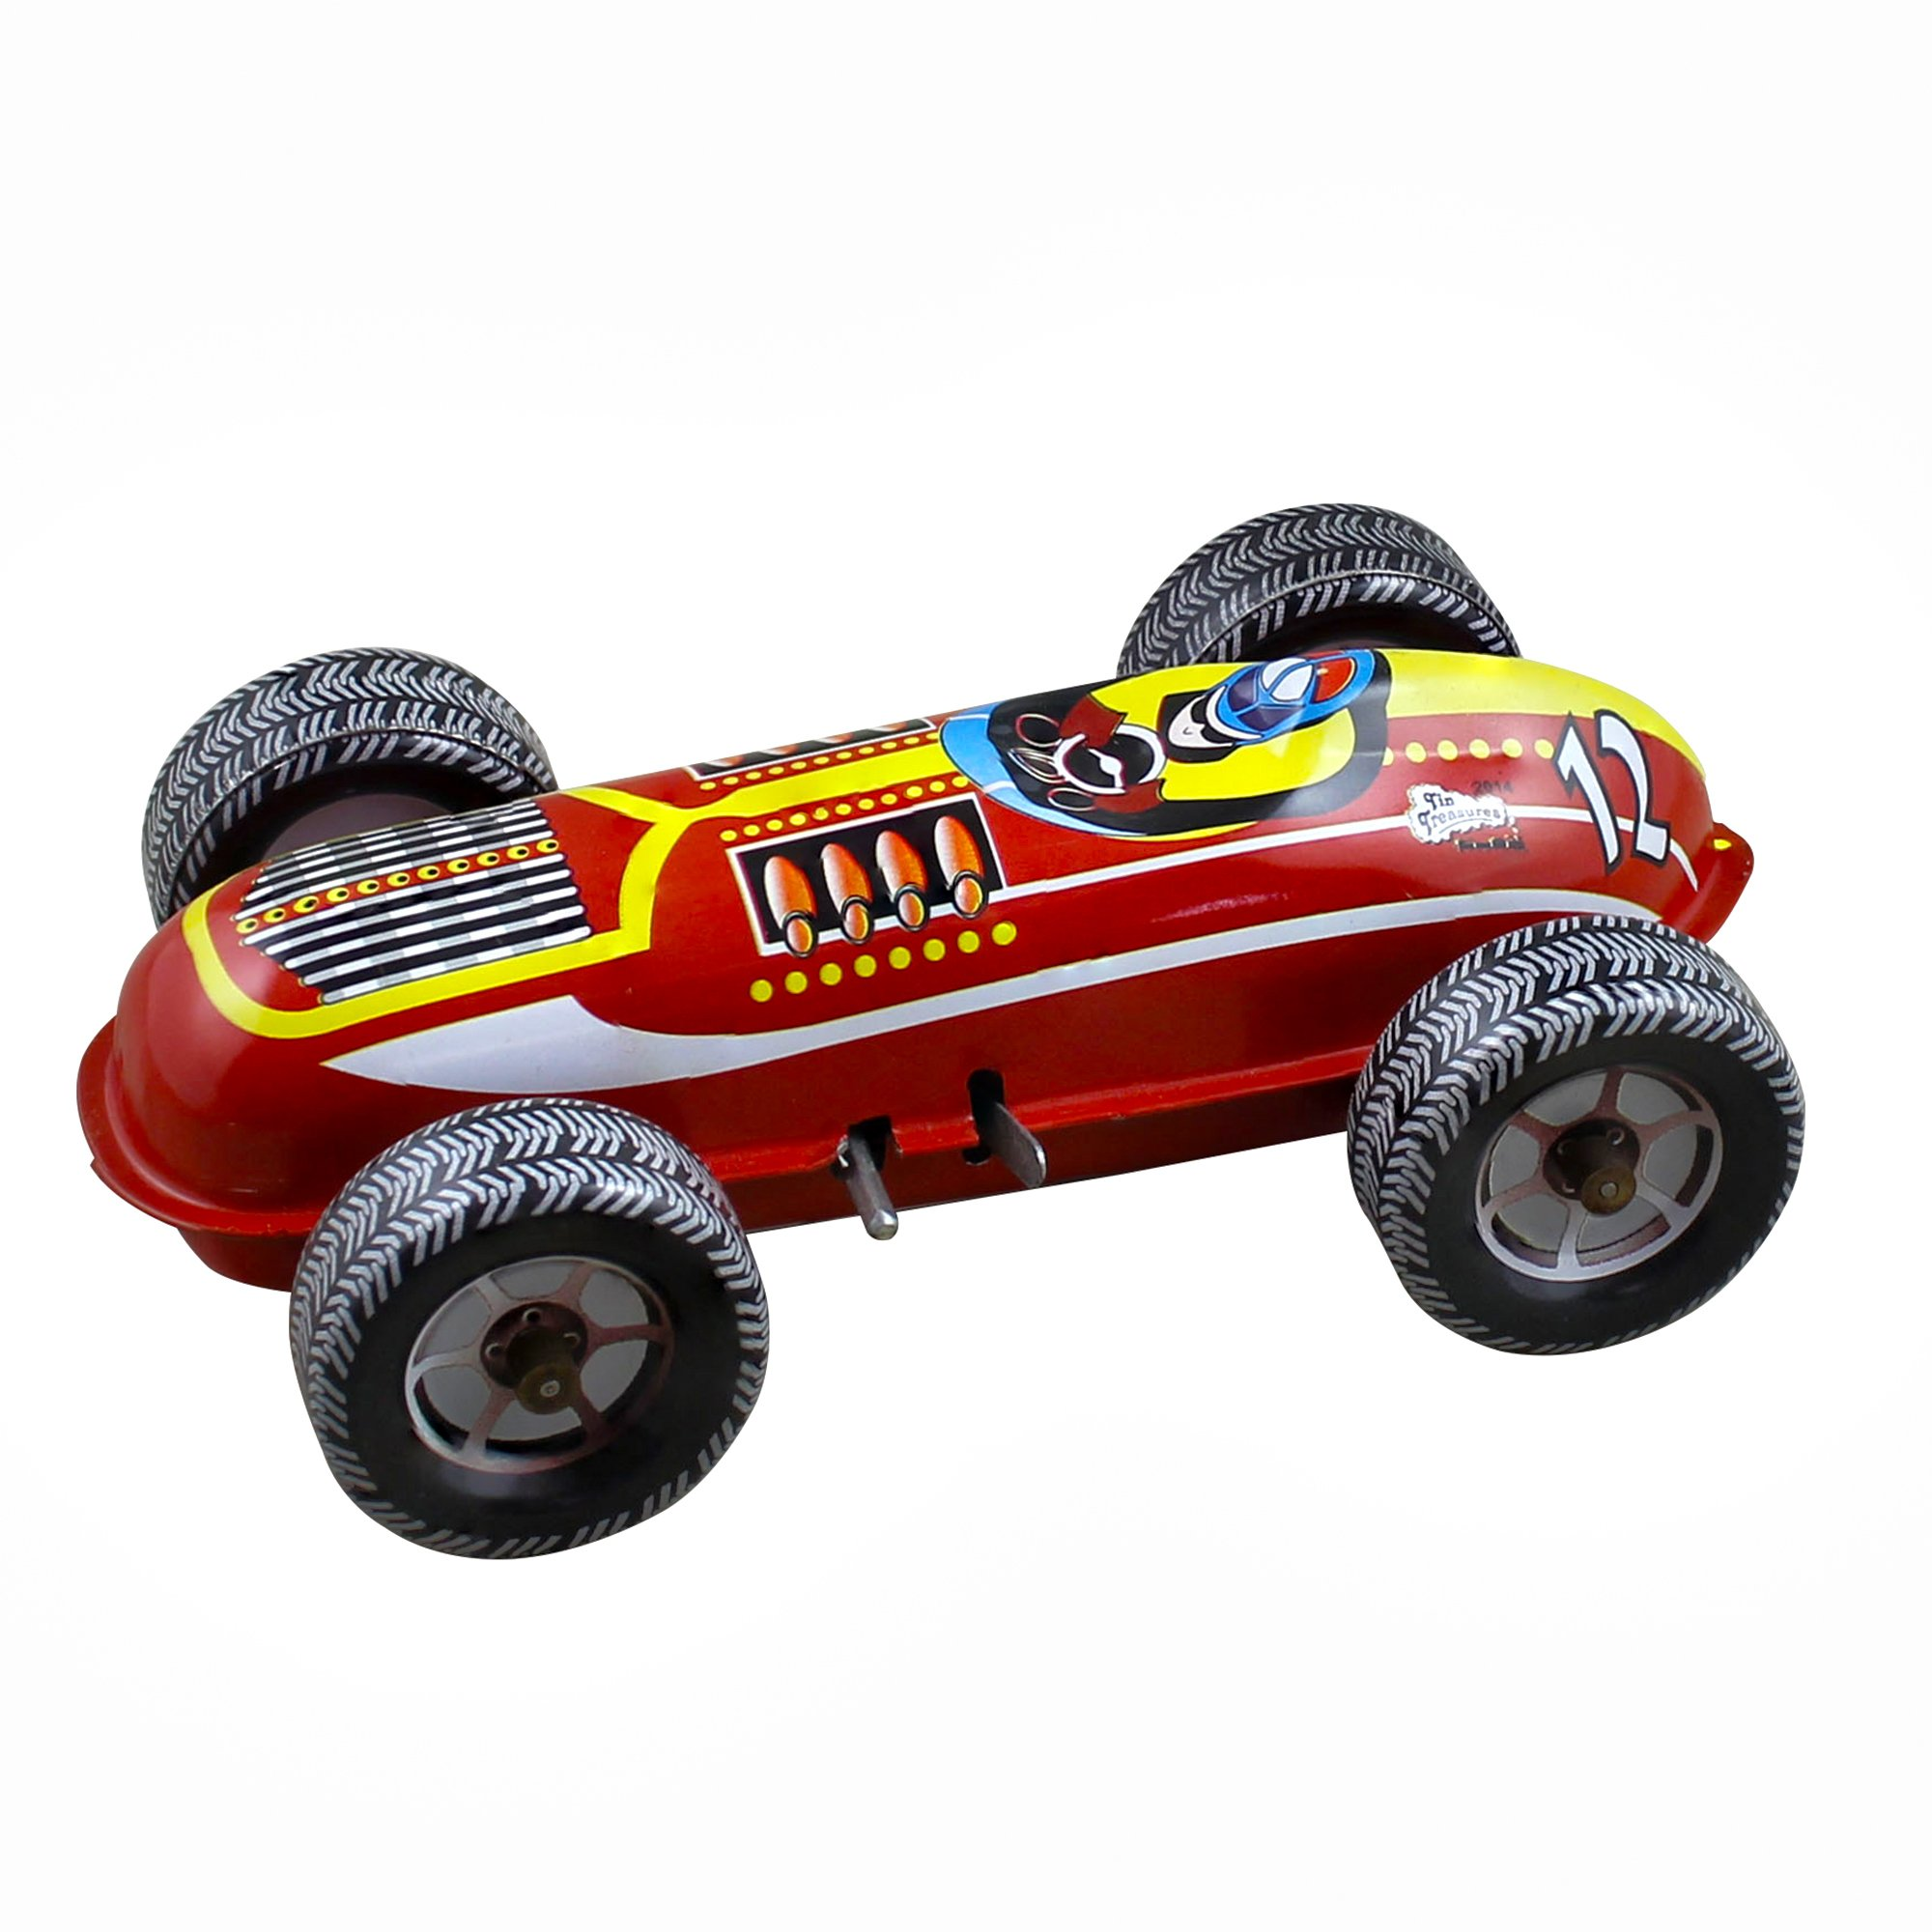 RoyaltyRoute Vintage Wind Up Champion Racer Car Tin Toys Collectibles for Adults - Great Birthday Gift Idea by RoyaltyRoute